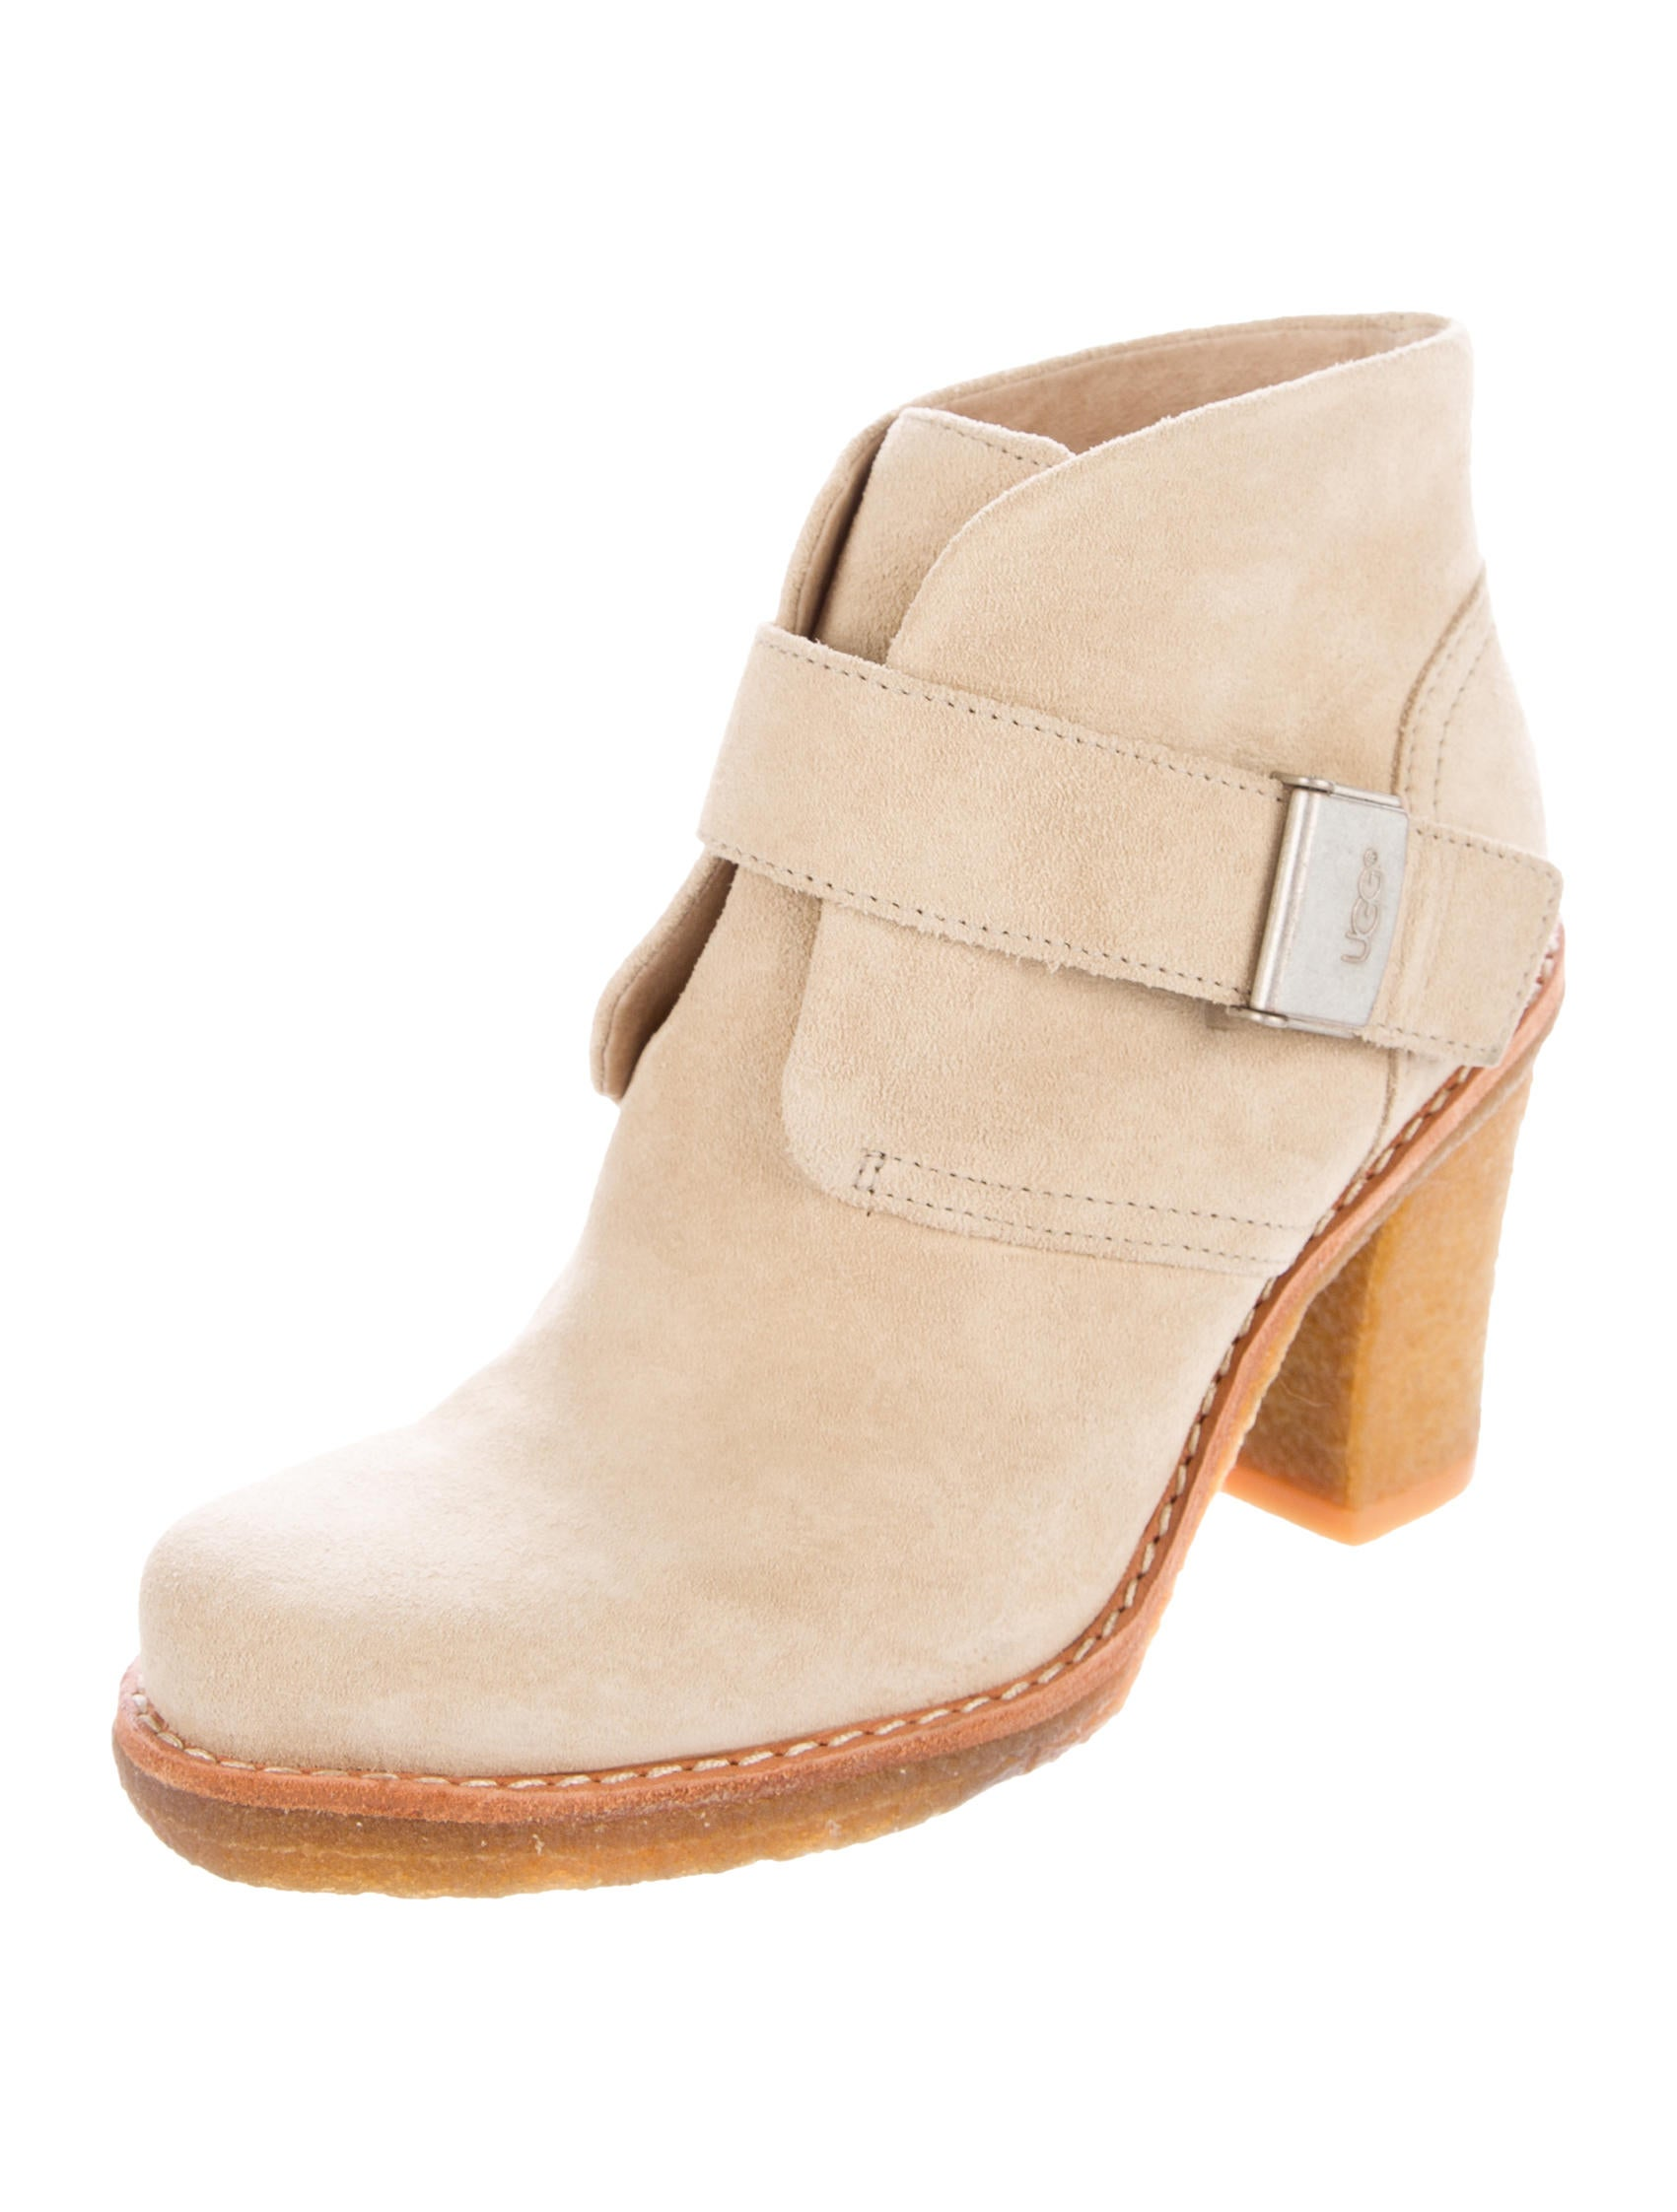 ugg australia brienne suede ankle boots shoes